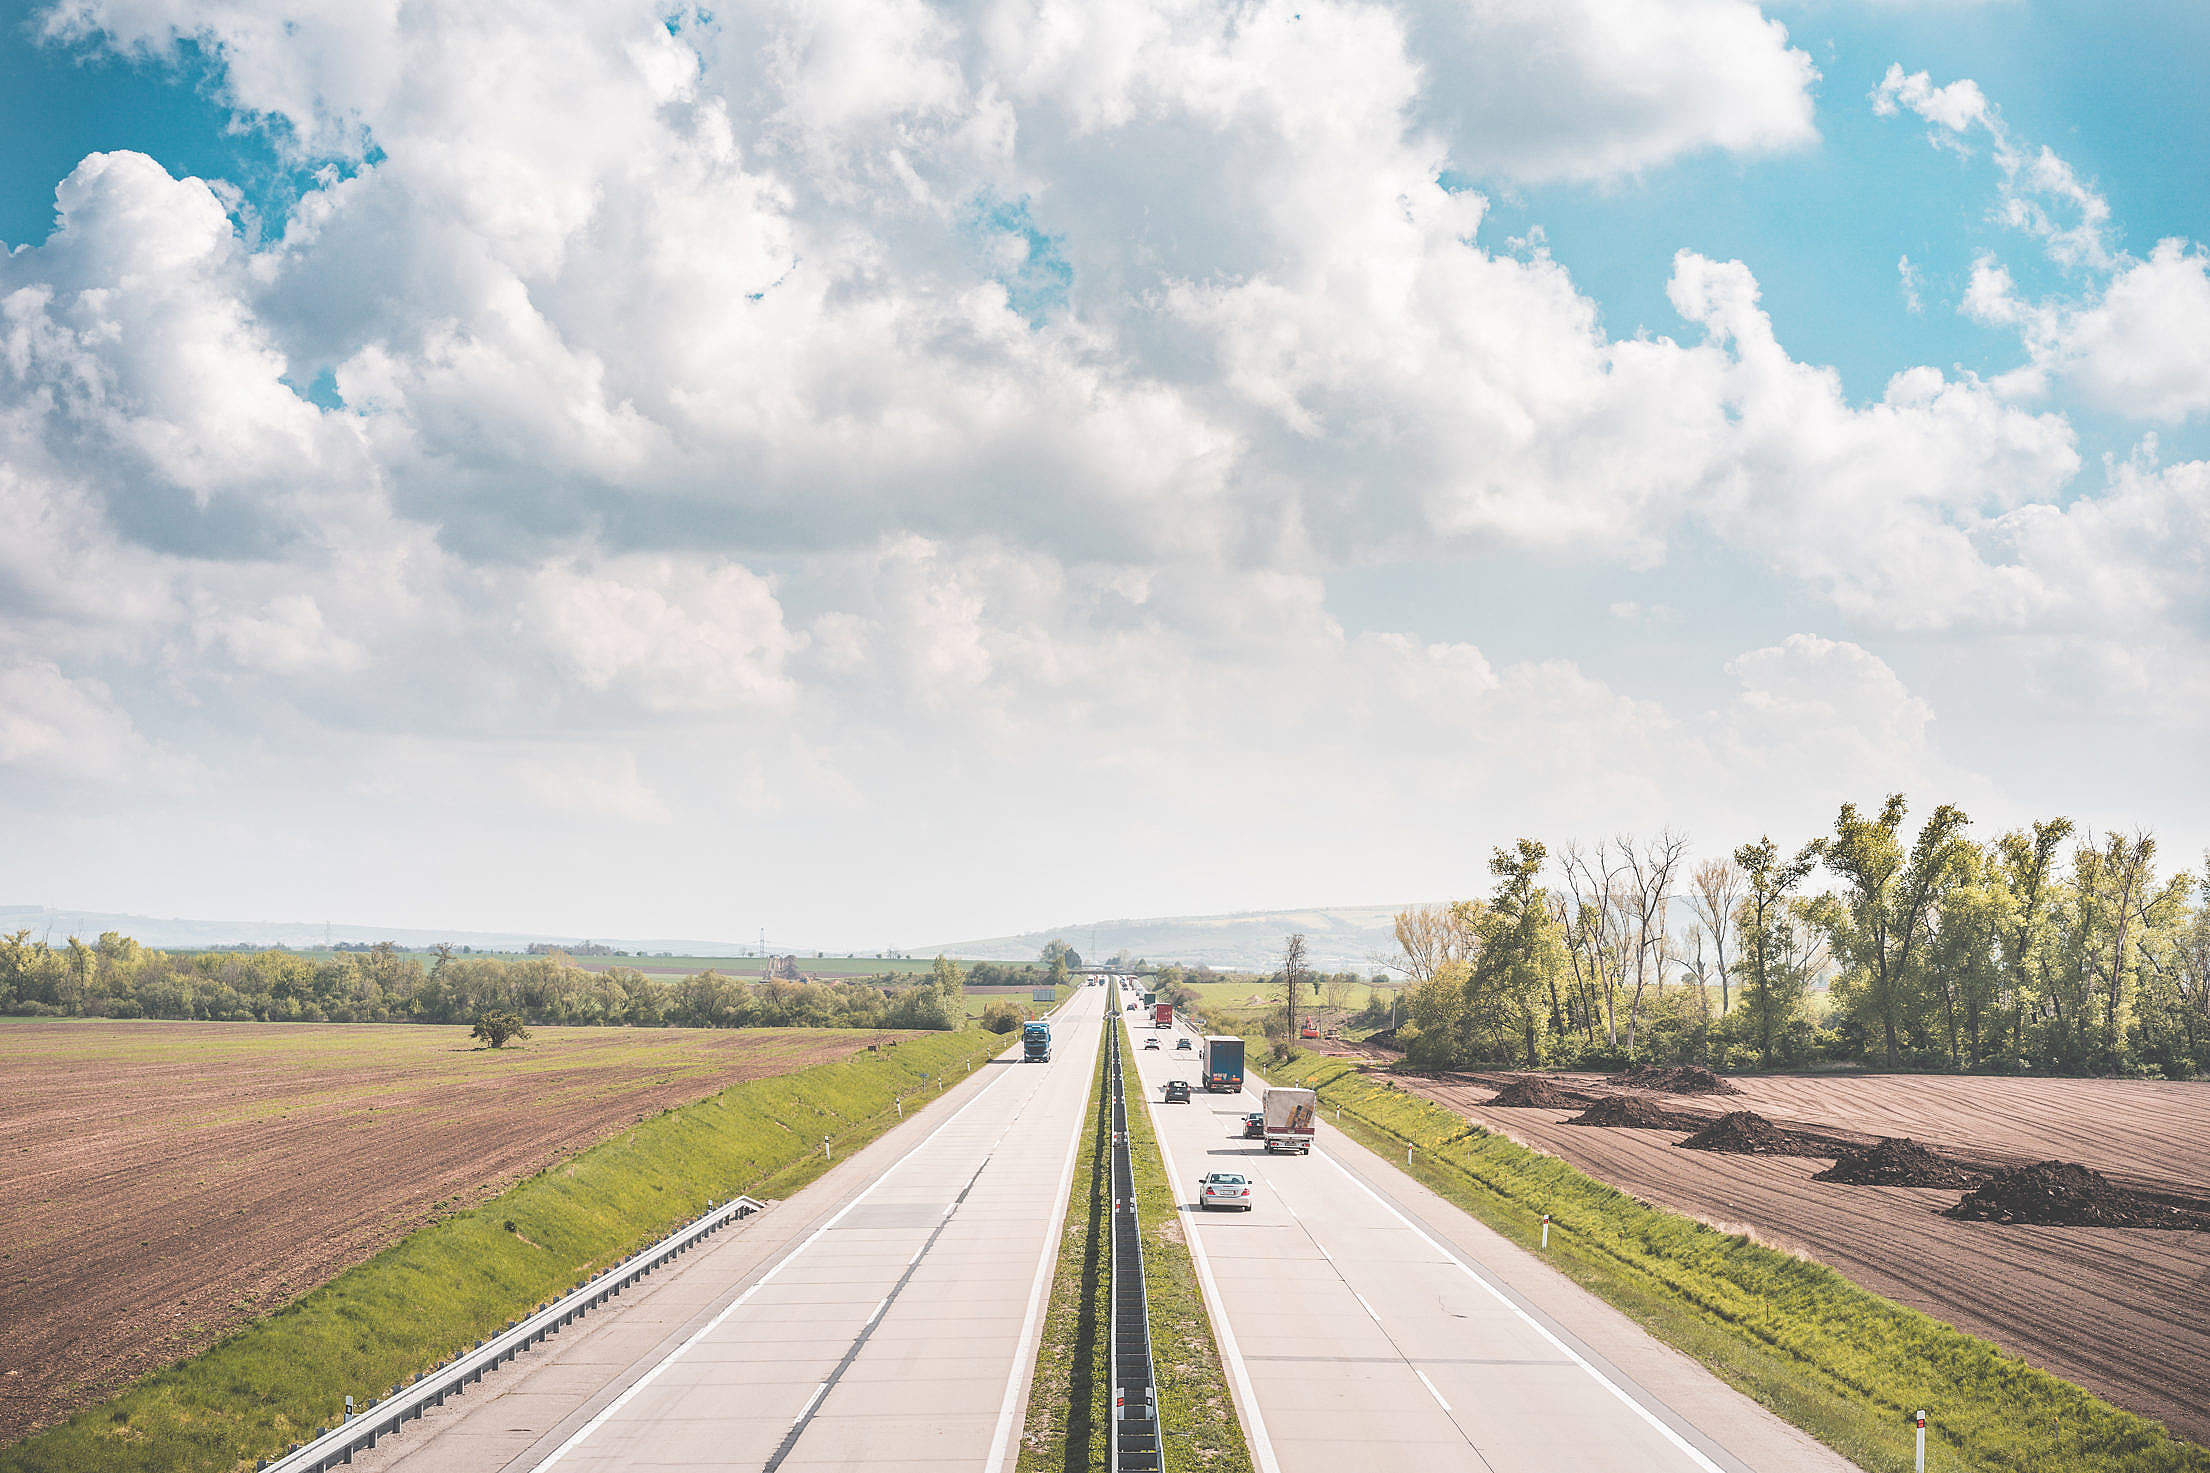 European Highway Surrounded by Fields Free Stock Photo